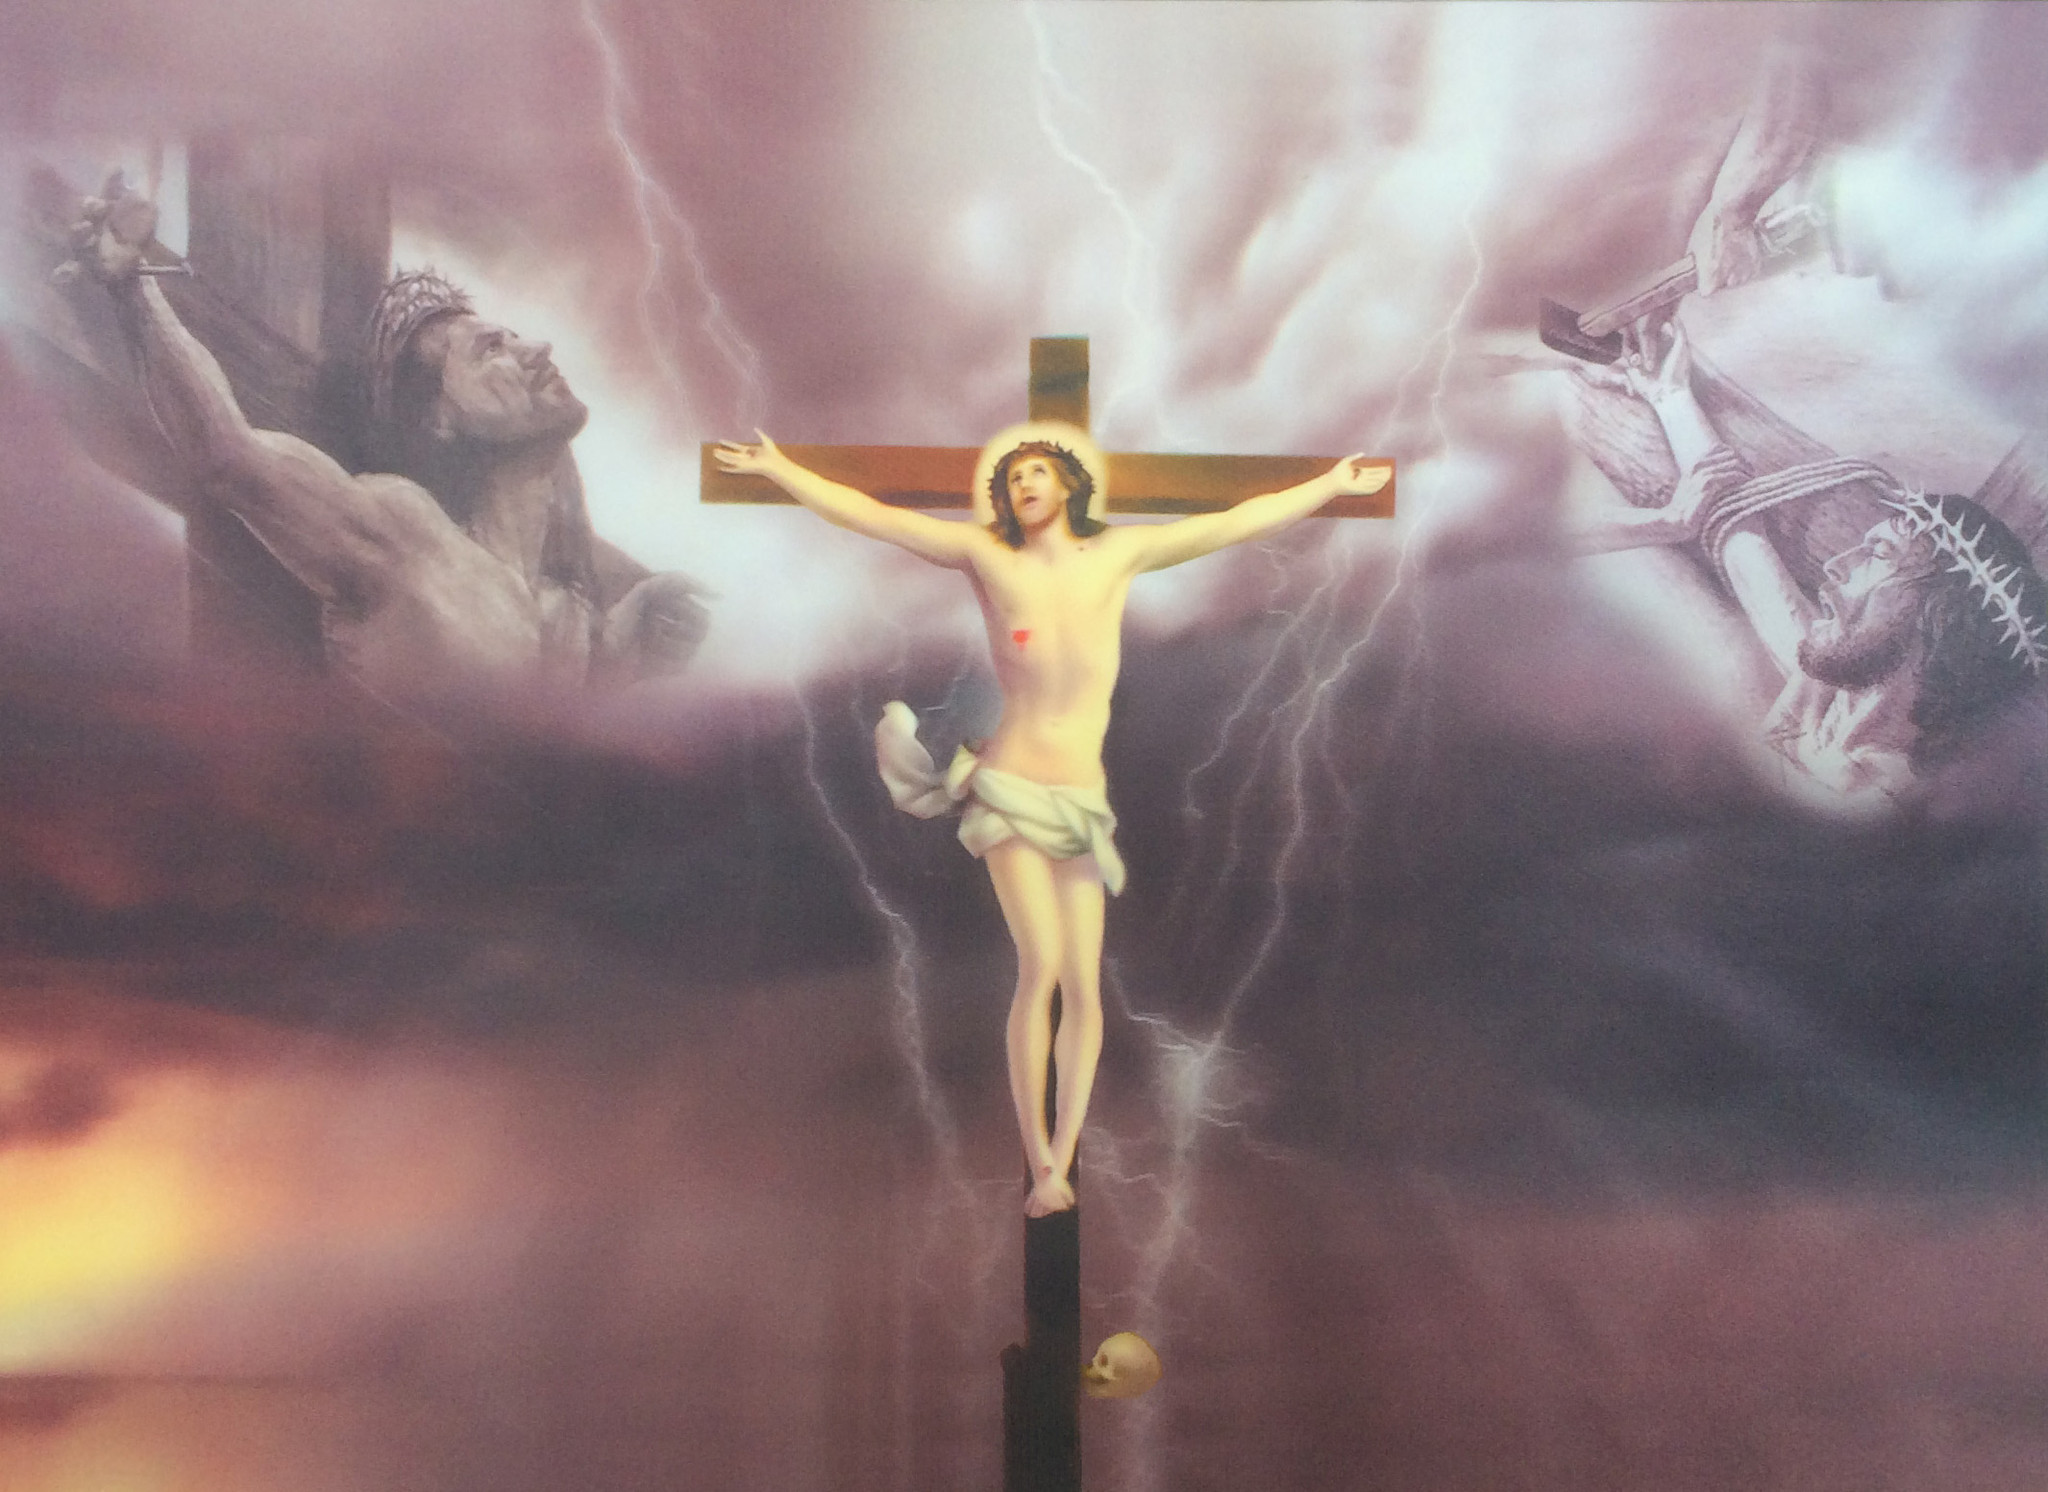 an overview of the legacy of jesus christ in christianity Learn about christianity - having faith in god and jesus christ christian living articles, daily devotionals, bible trivia, and more.